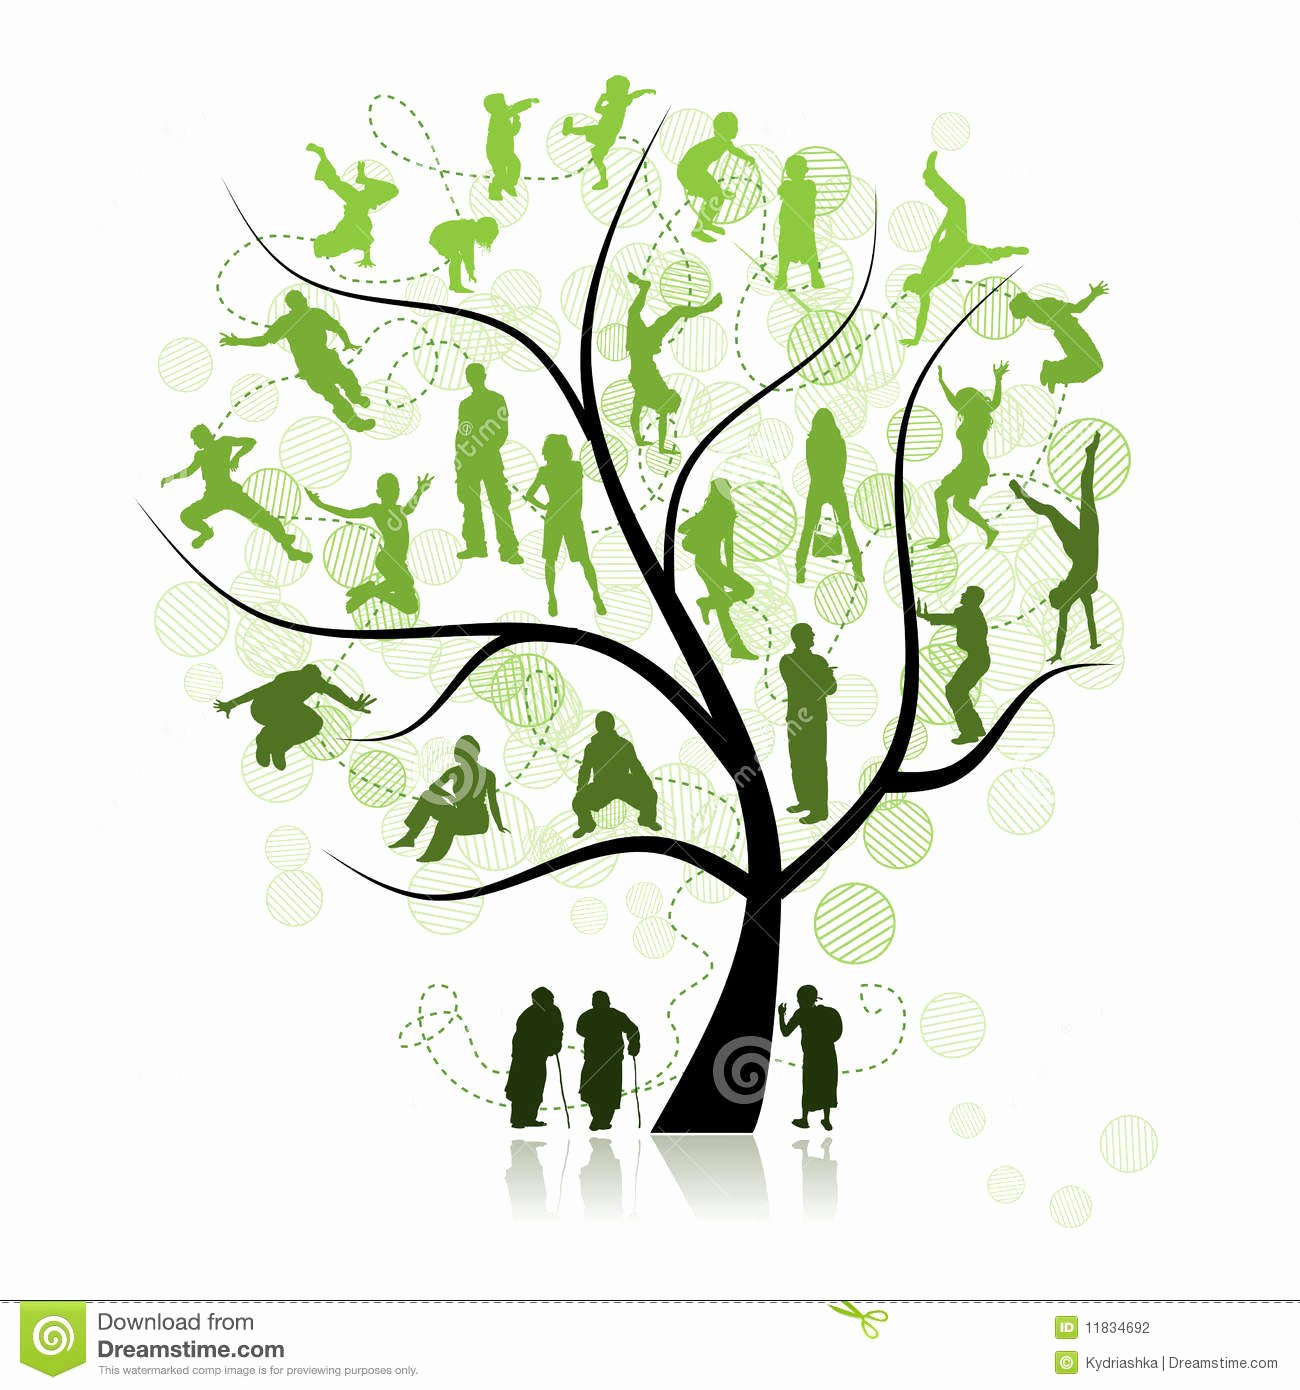 Pictures Of Family Trees Lovely Family Tree Relatives Stock Vector Illustration Of Environment